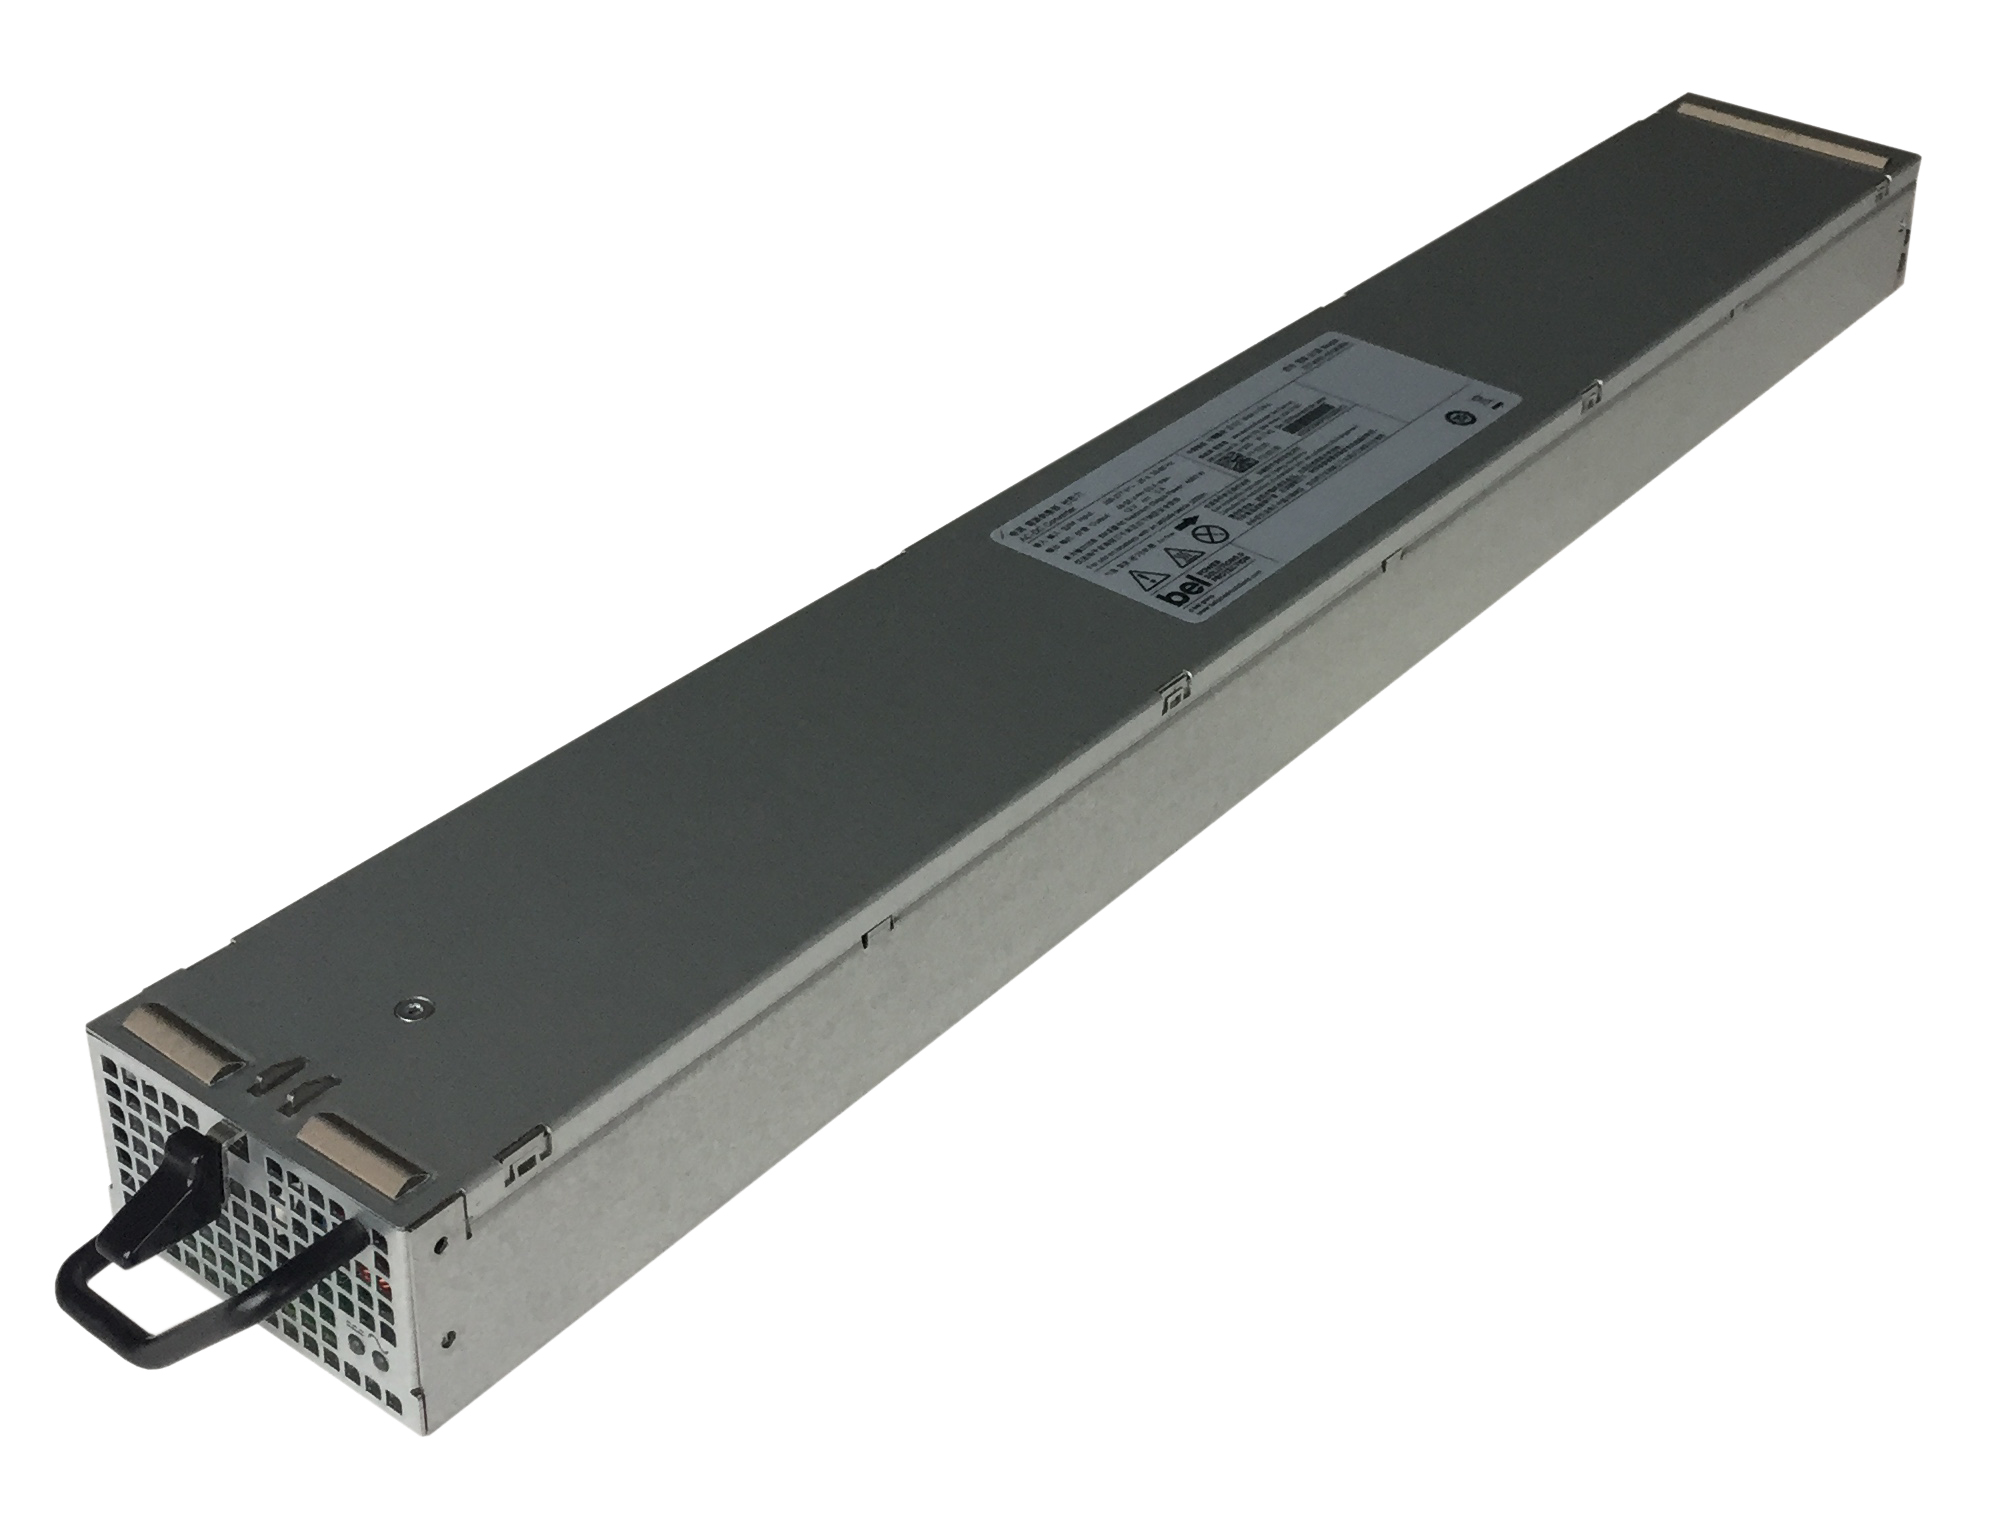 4 kW Power Supply for OCP, CORD and Datacenters